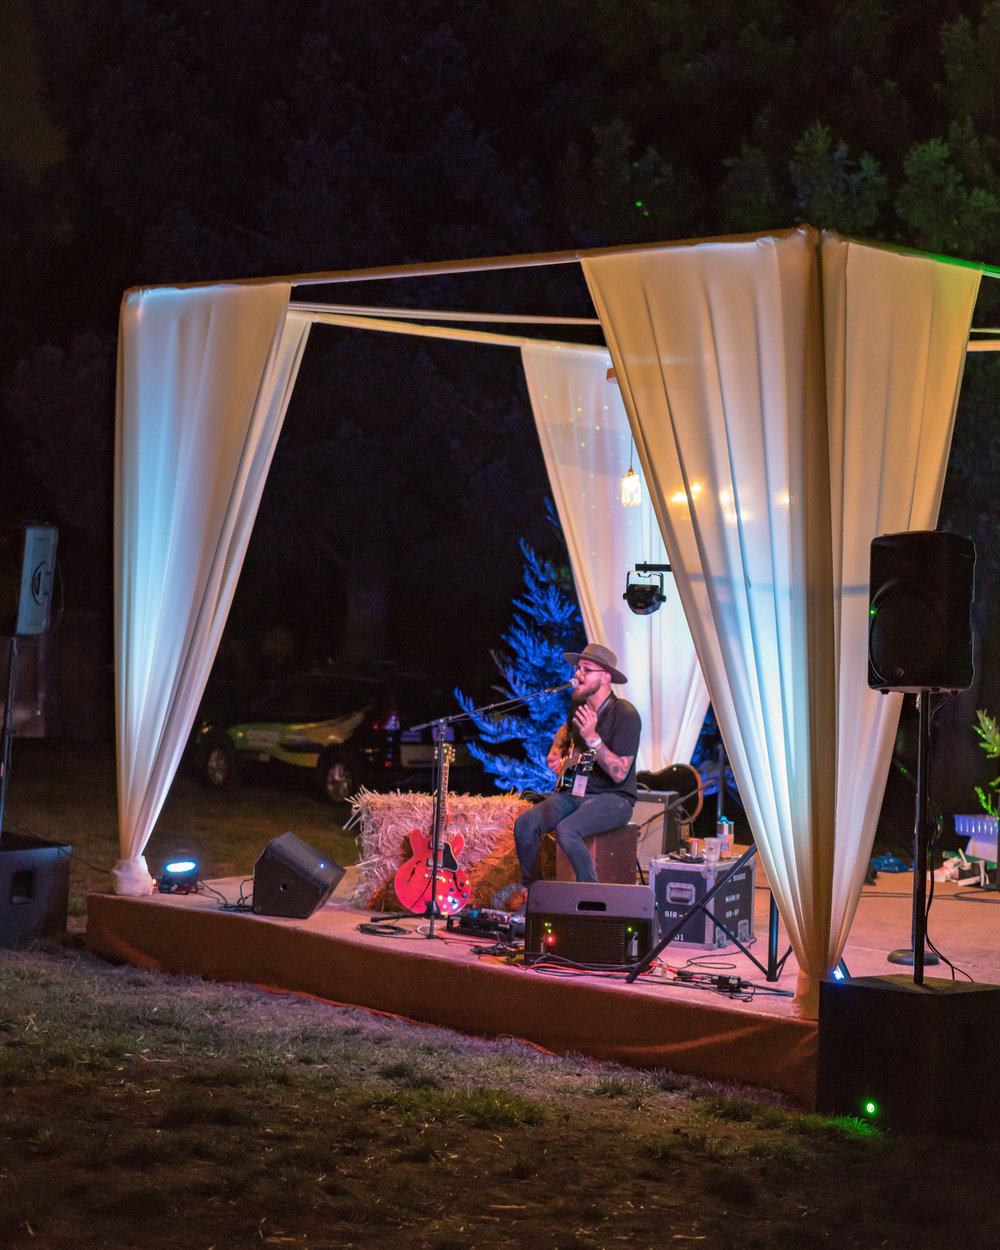 - With a schedule of live music, invite your fun to continue into the night.